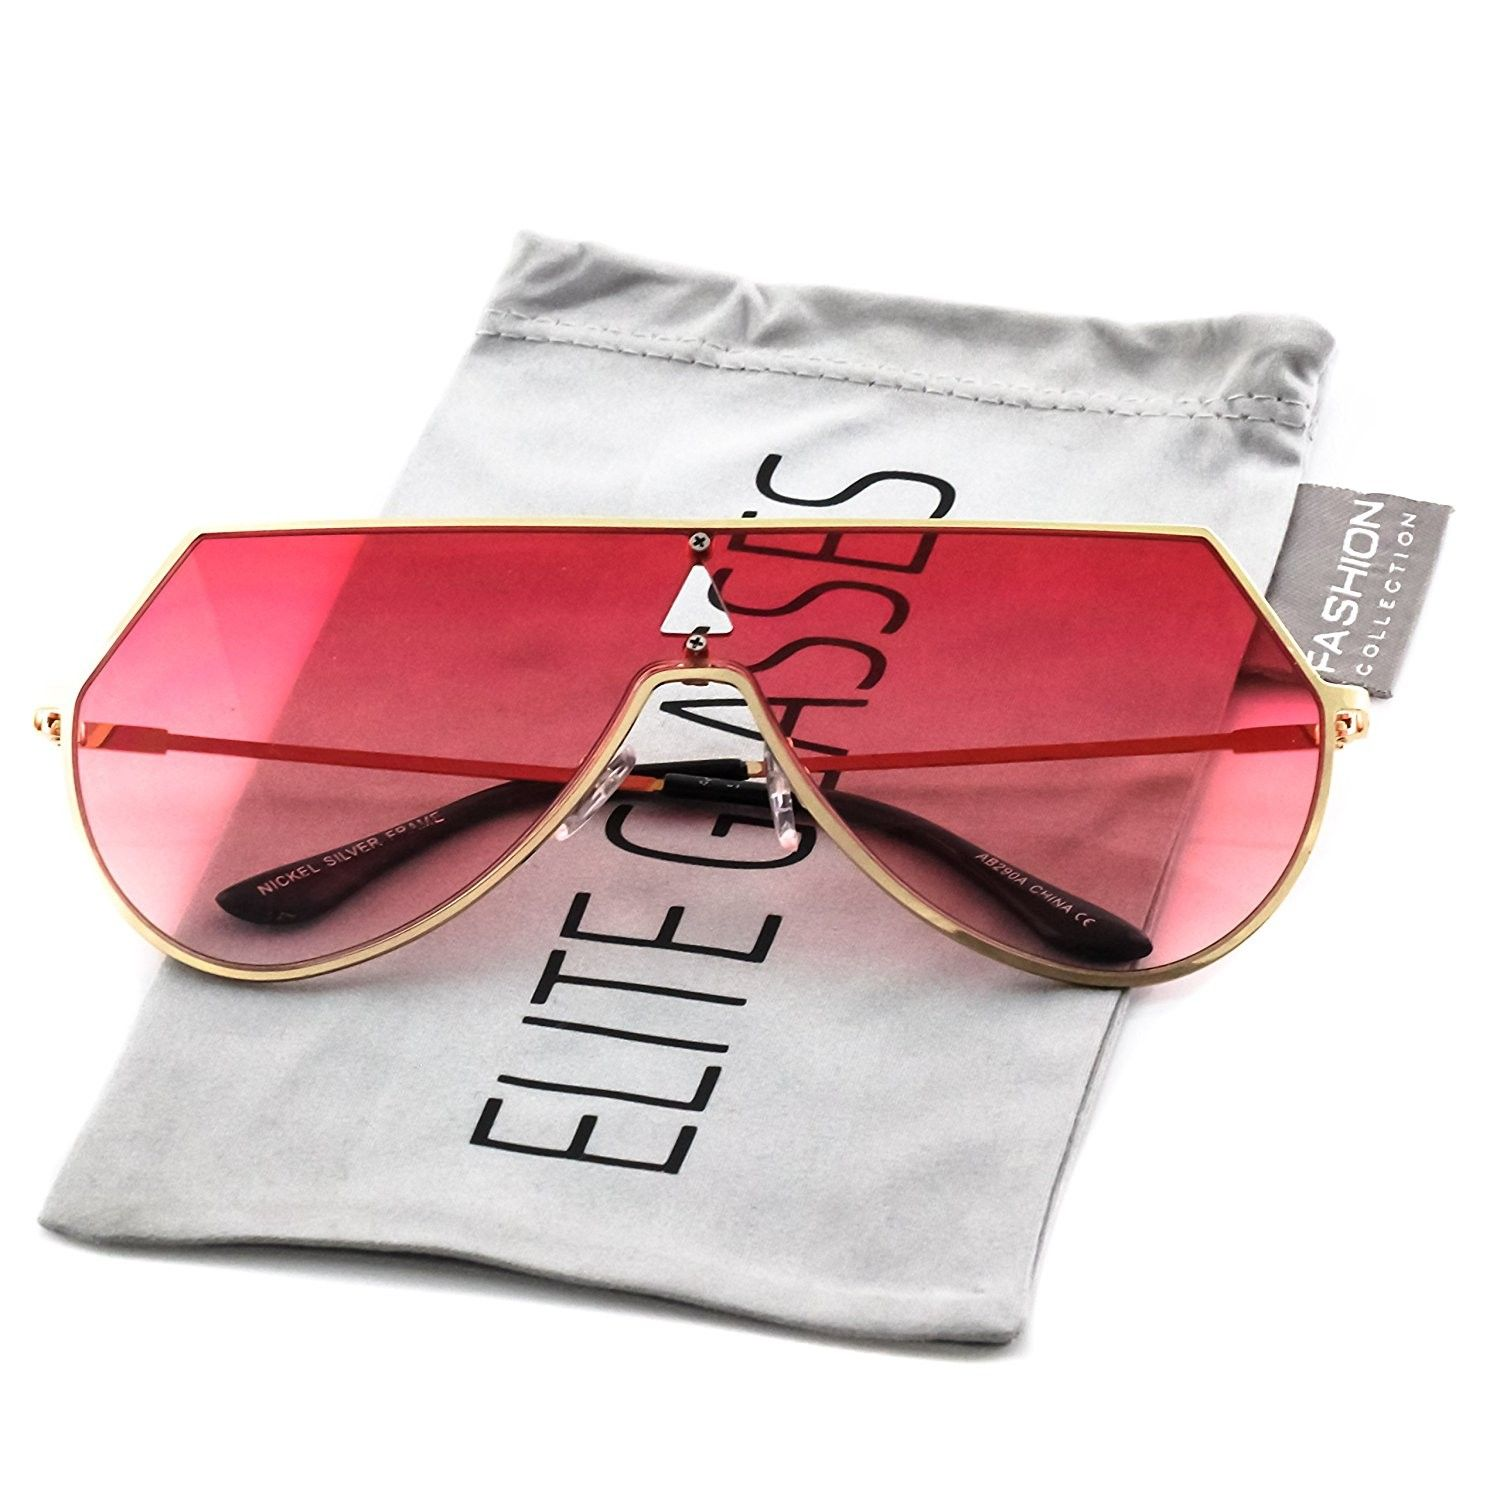 f06b3fe4089 Elite Oversize Unisex Flat Top Aviator Retro Shield Mirrored Lens Rimless  Sunglasses - Red Ombre - C1185930U4G - Women s Sunglasses